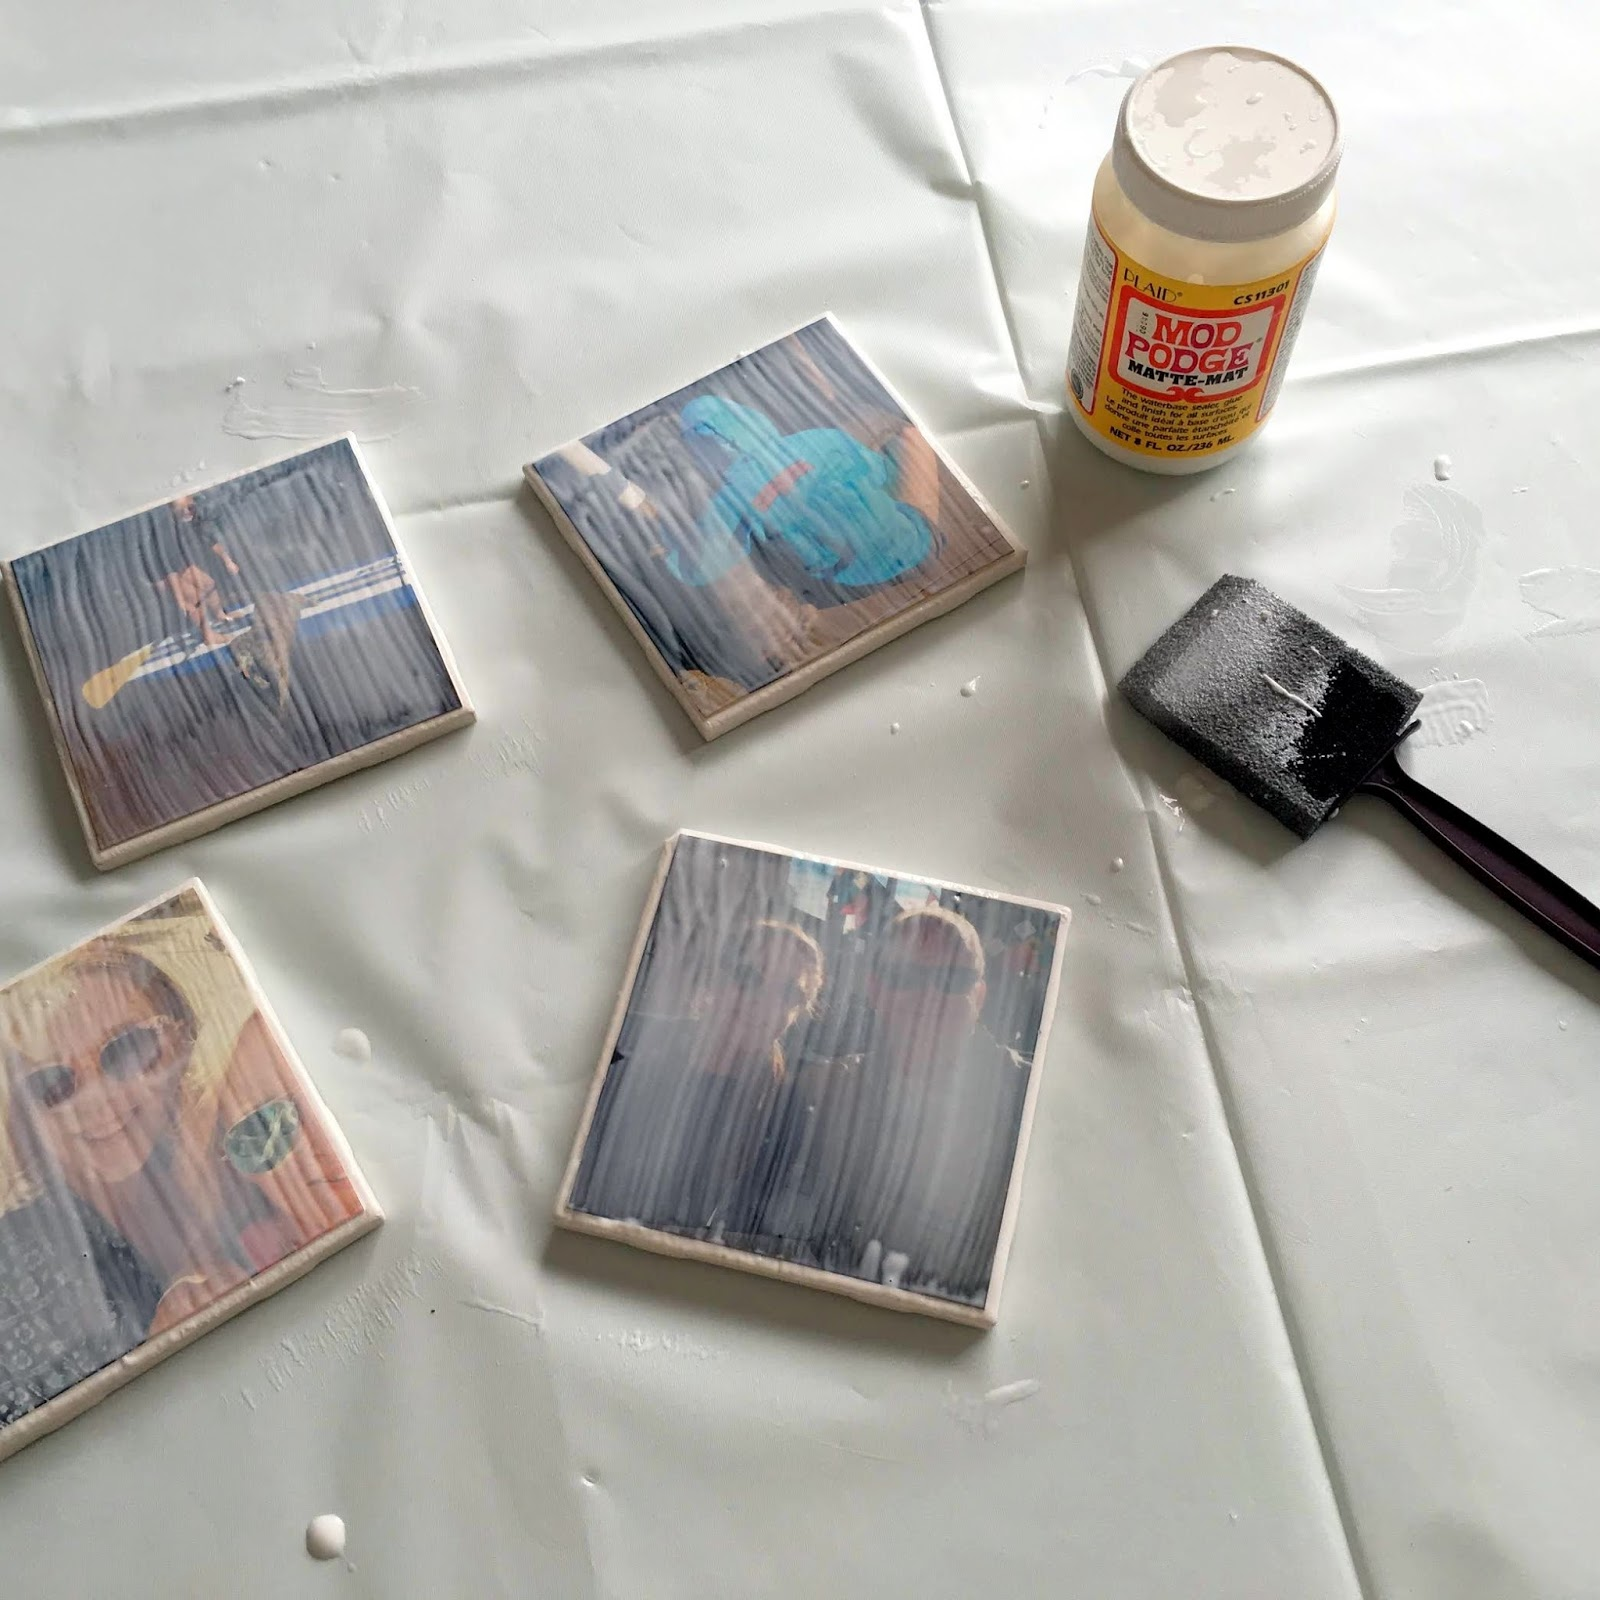 Personalize your coasters! All you need are photos, Mod Podge and ceramic tiles!